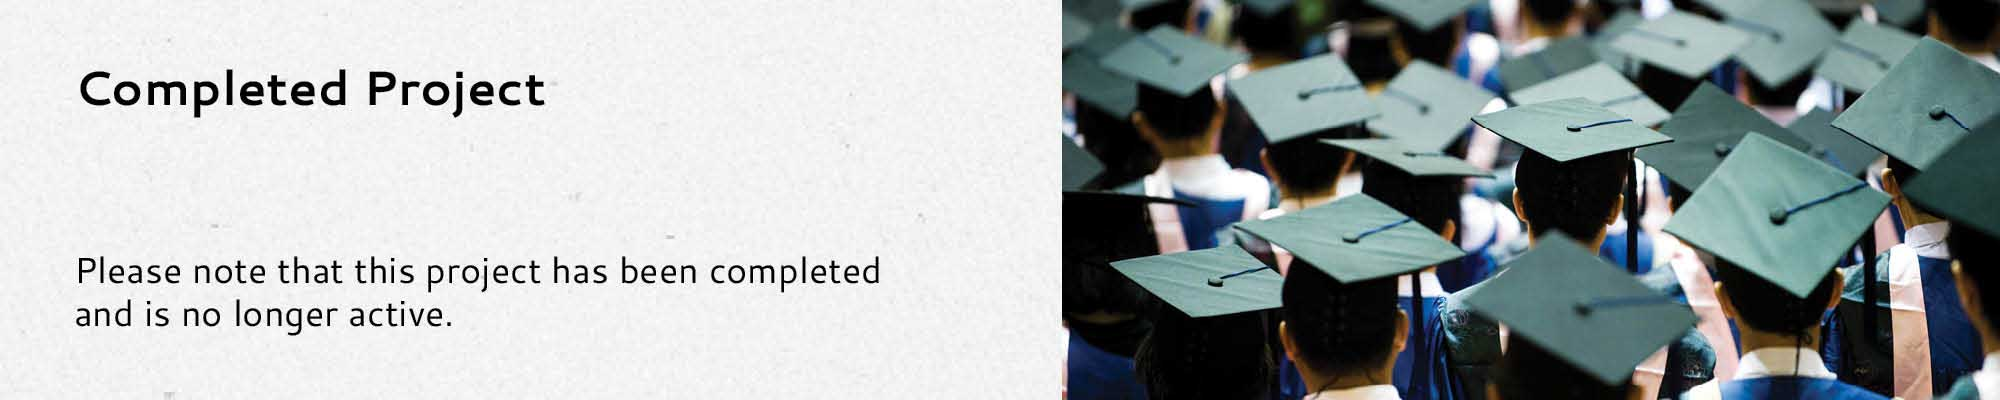 Applied Baccalaureate Degrees header image